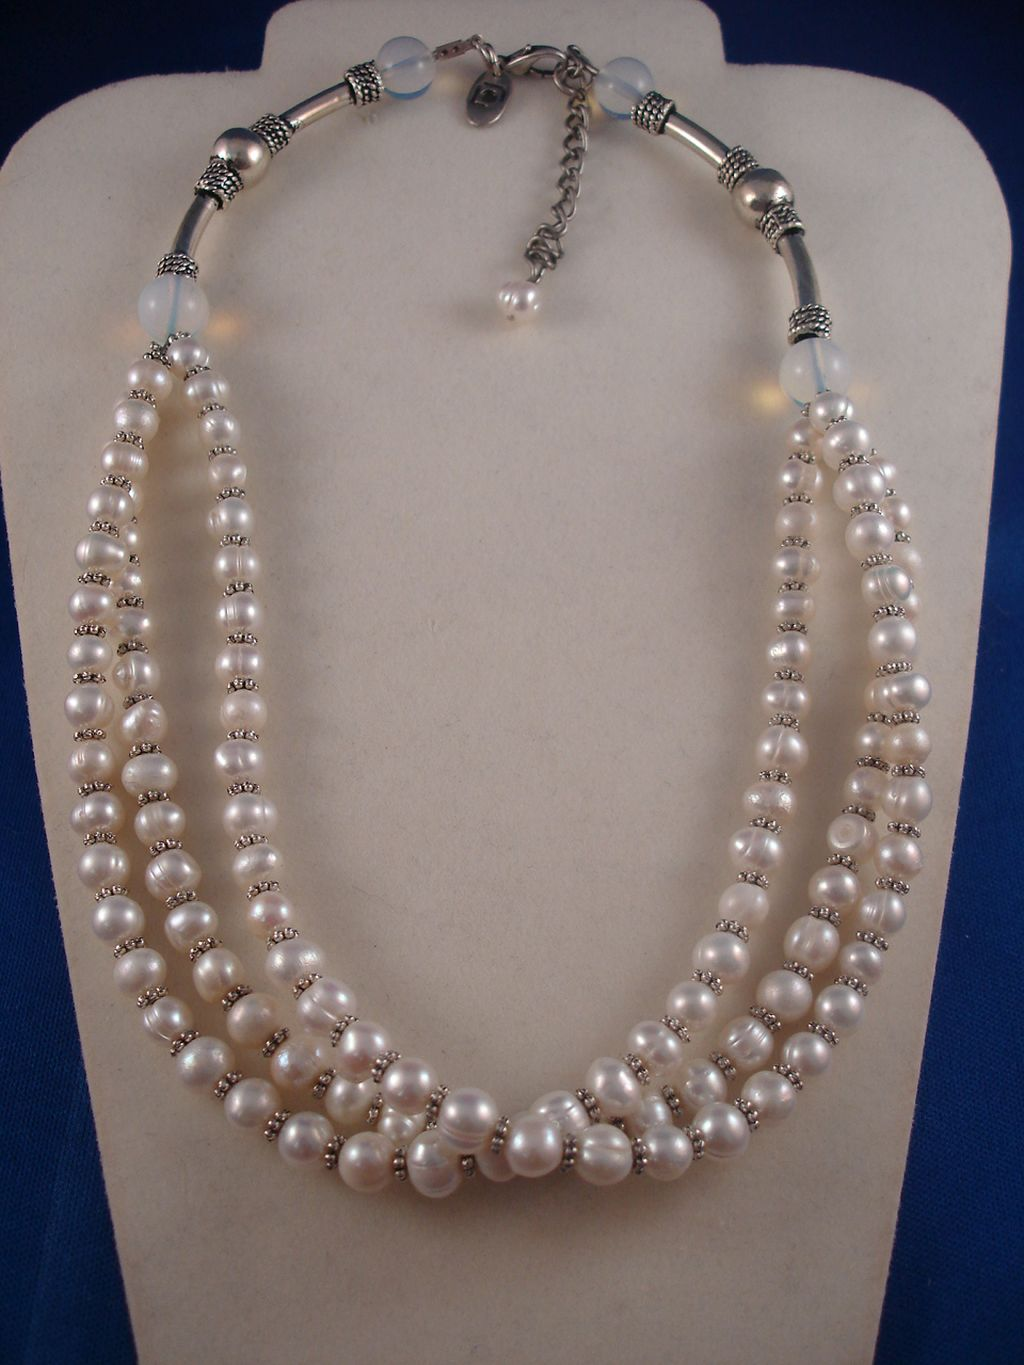 Three Layers White Genuine Pearls Necklace, Classic Style